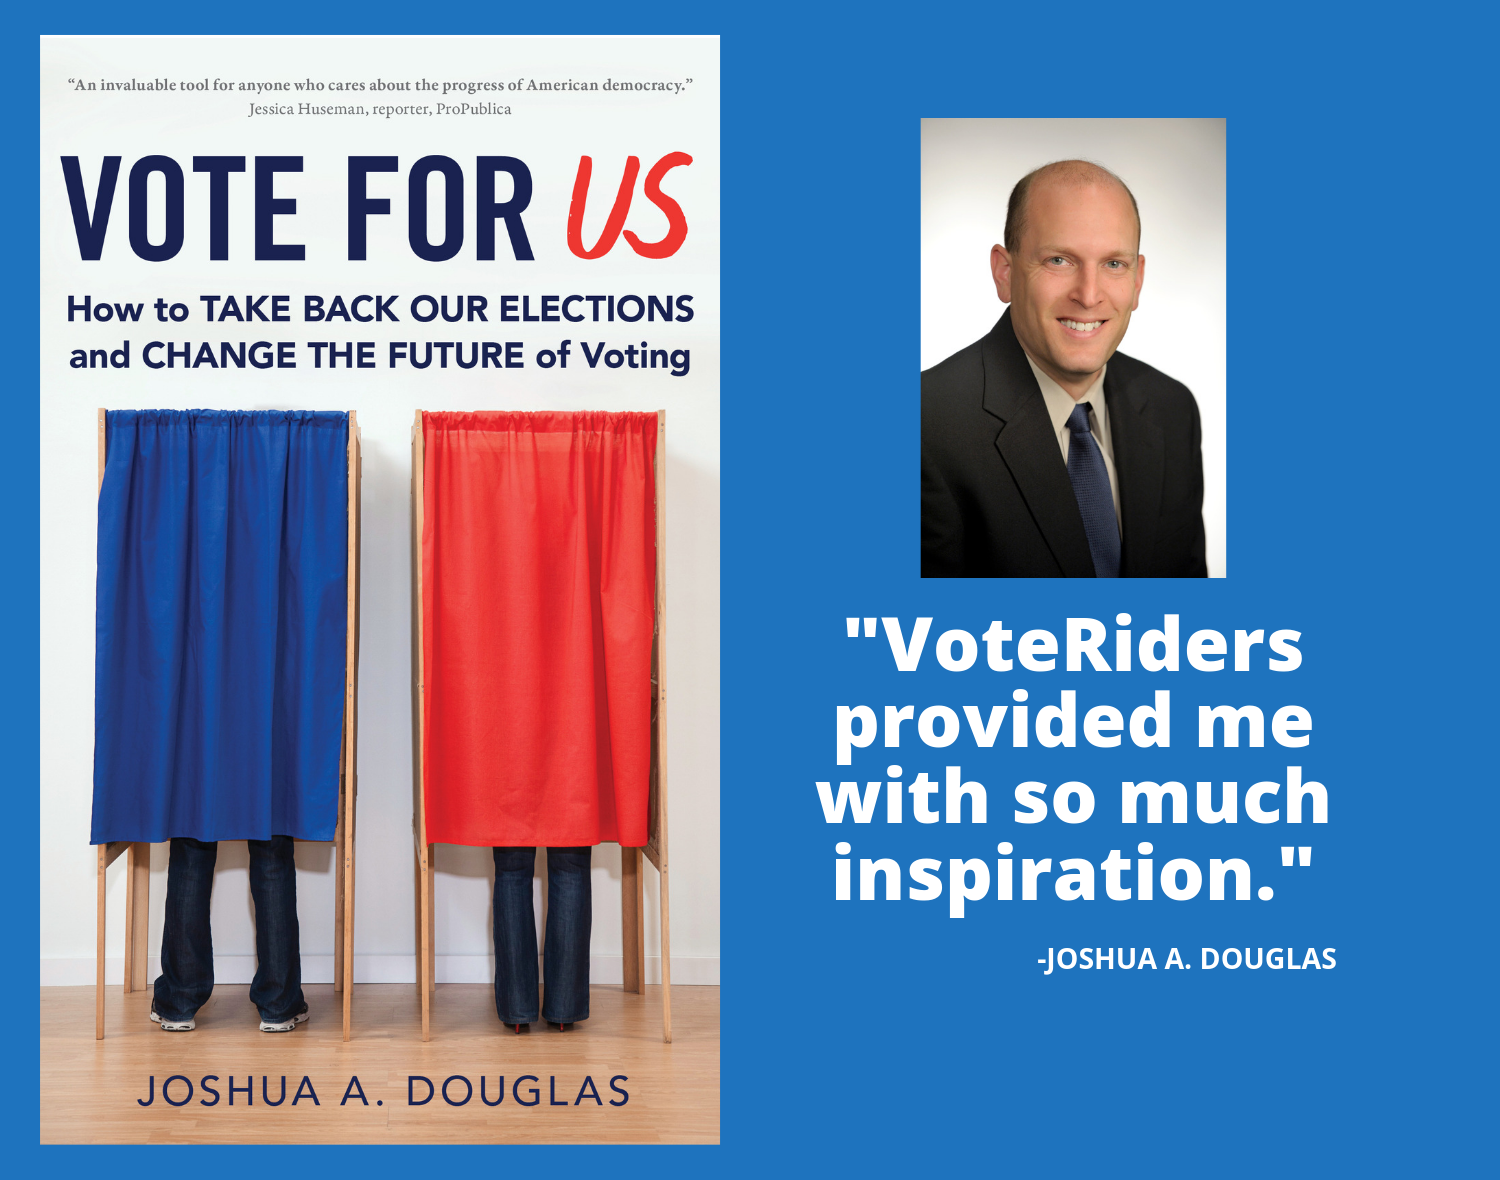 Vote for US by J. Douglas